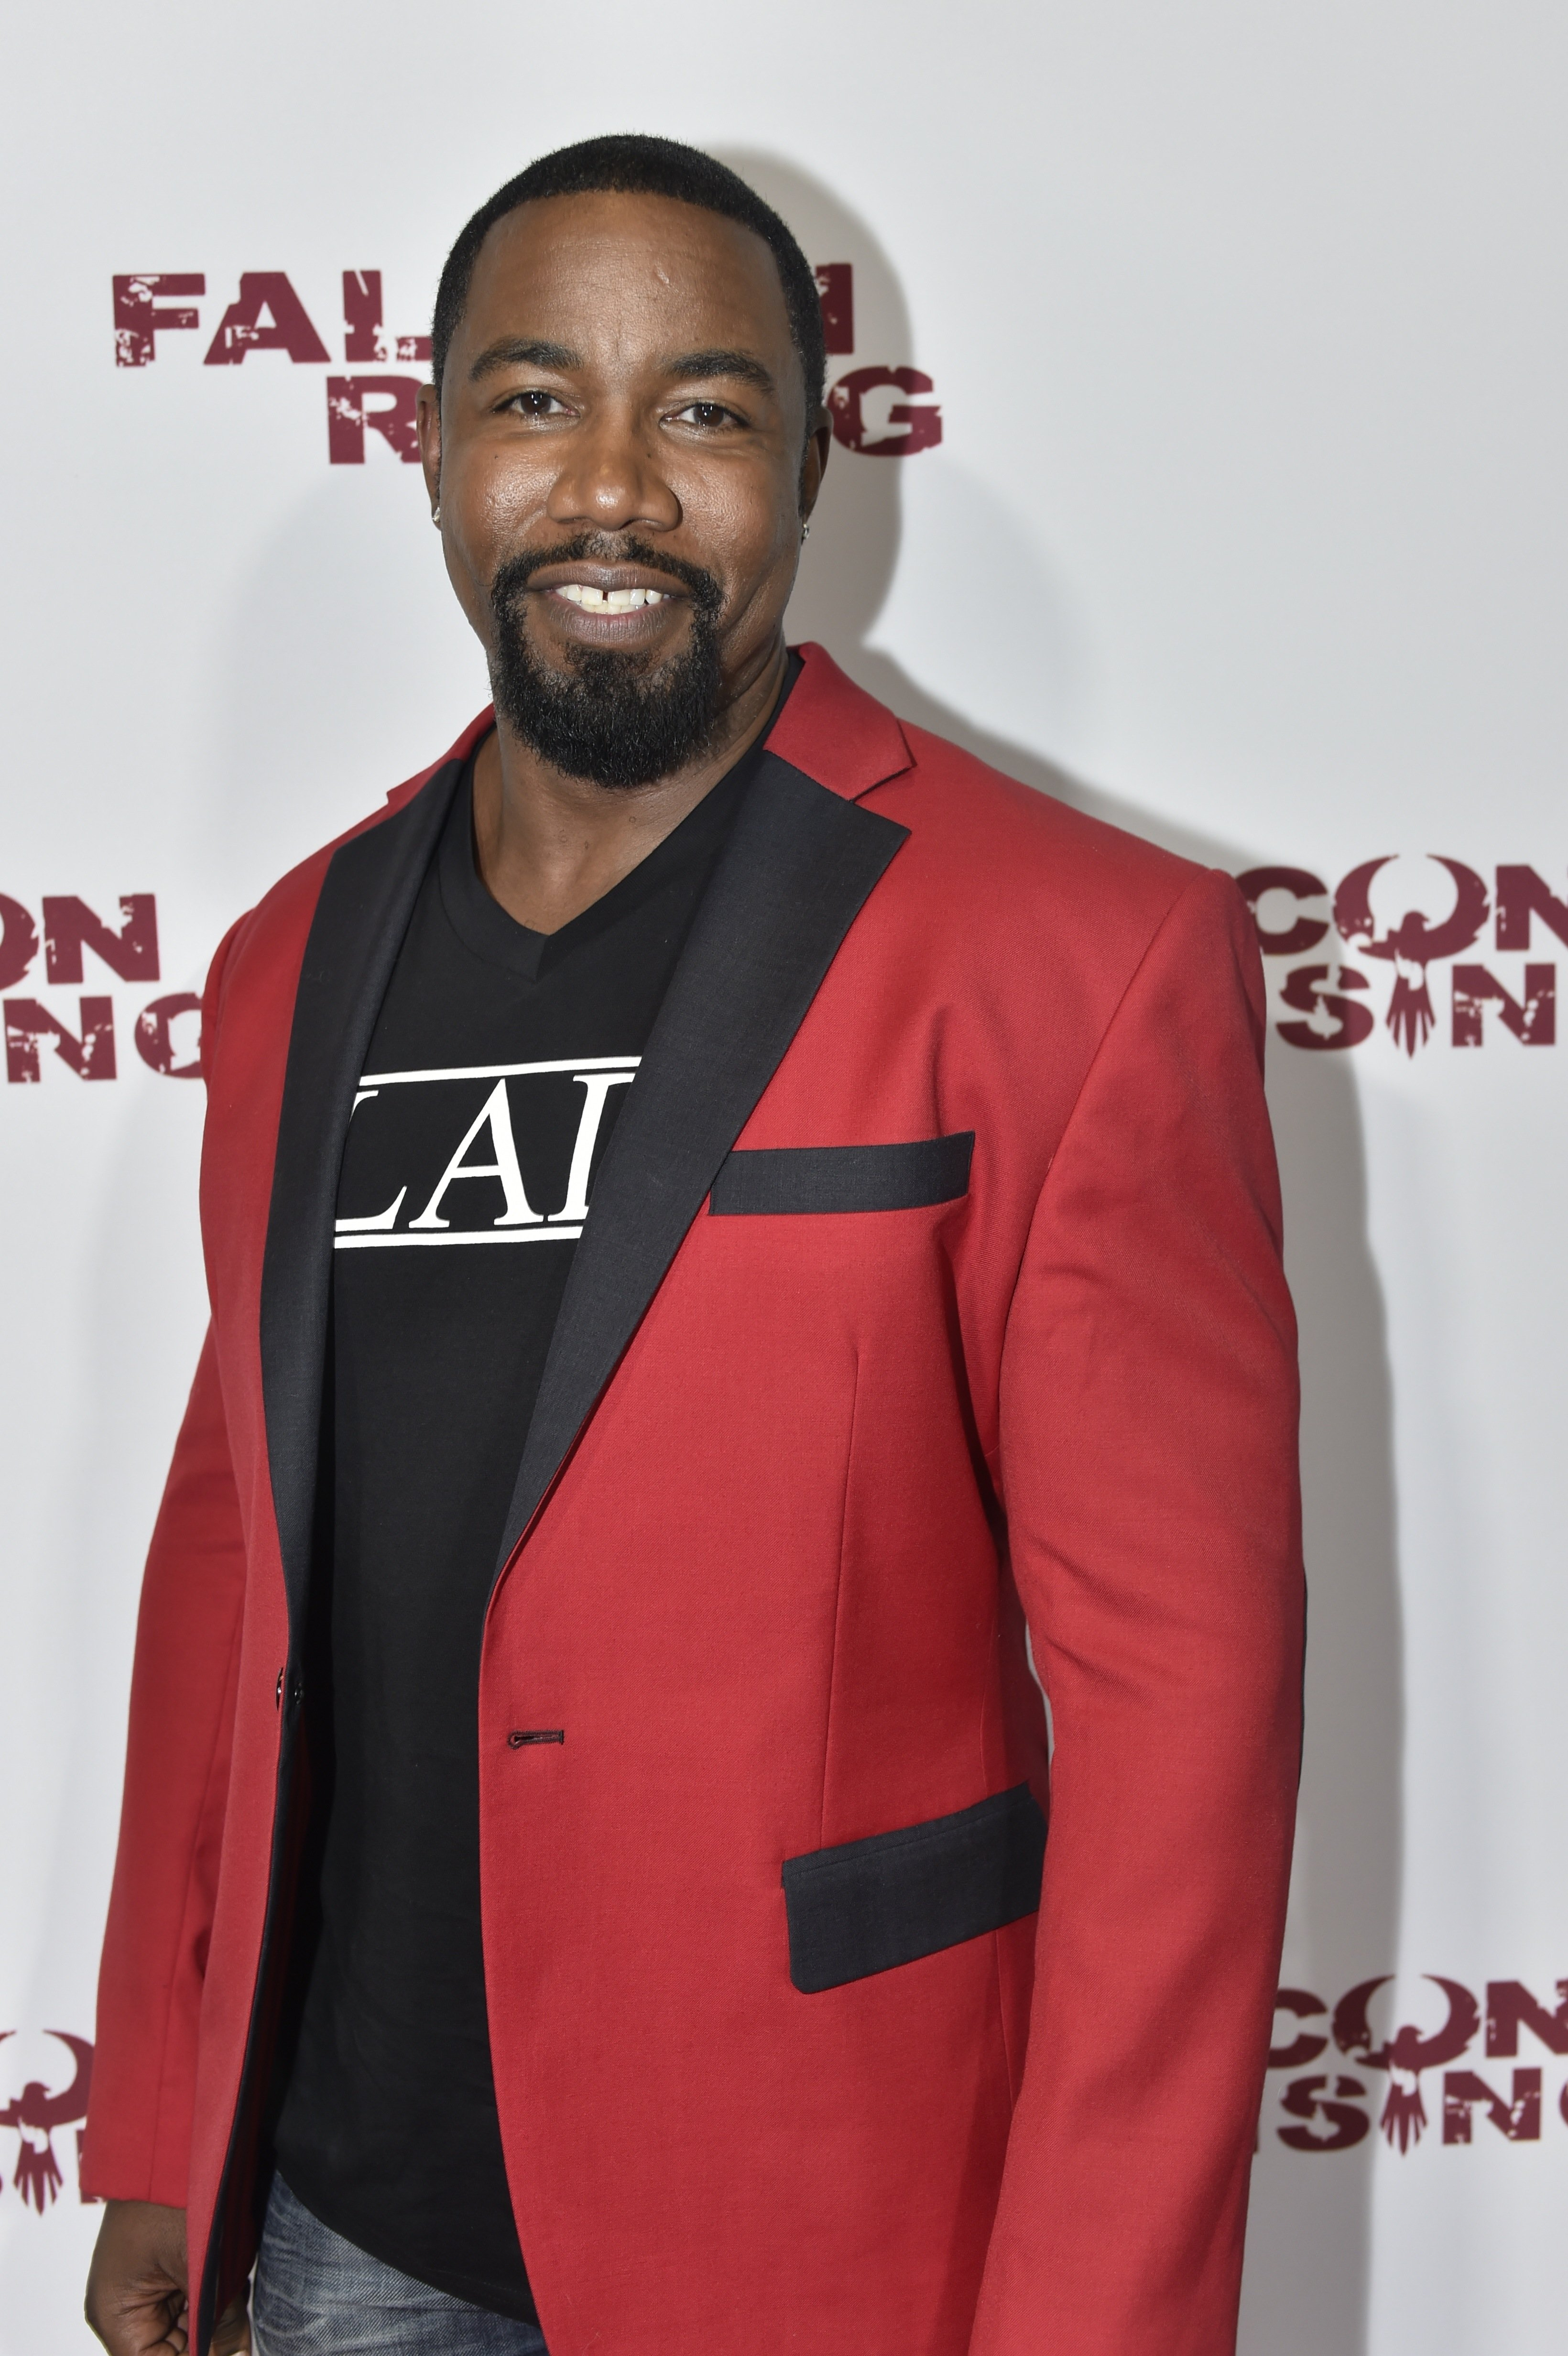 Michael Jai White on September 5, 2014 in Morrow, Georgia | Photo: Getty Images/Global Images Ukraine